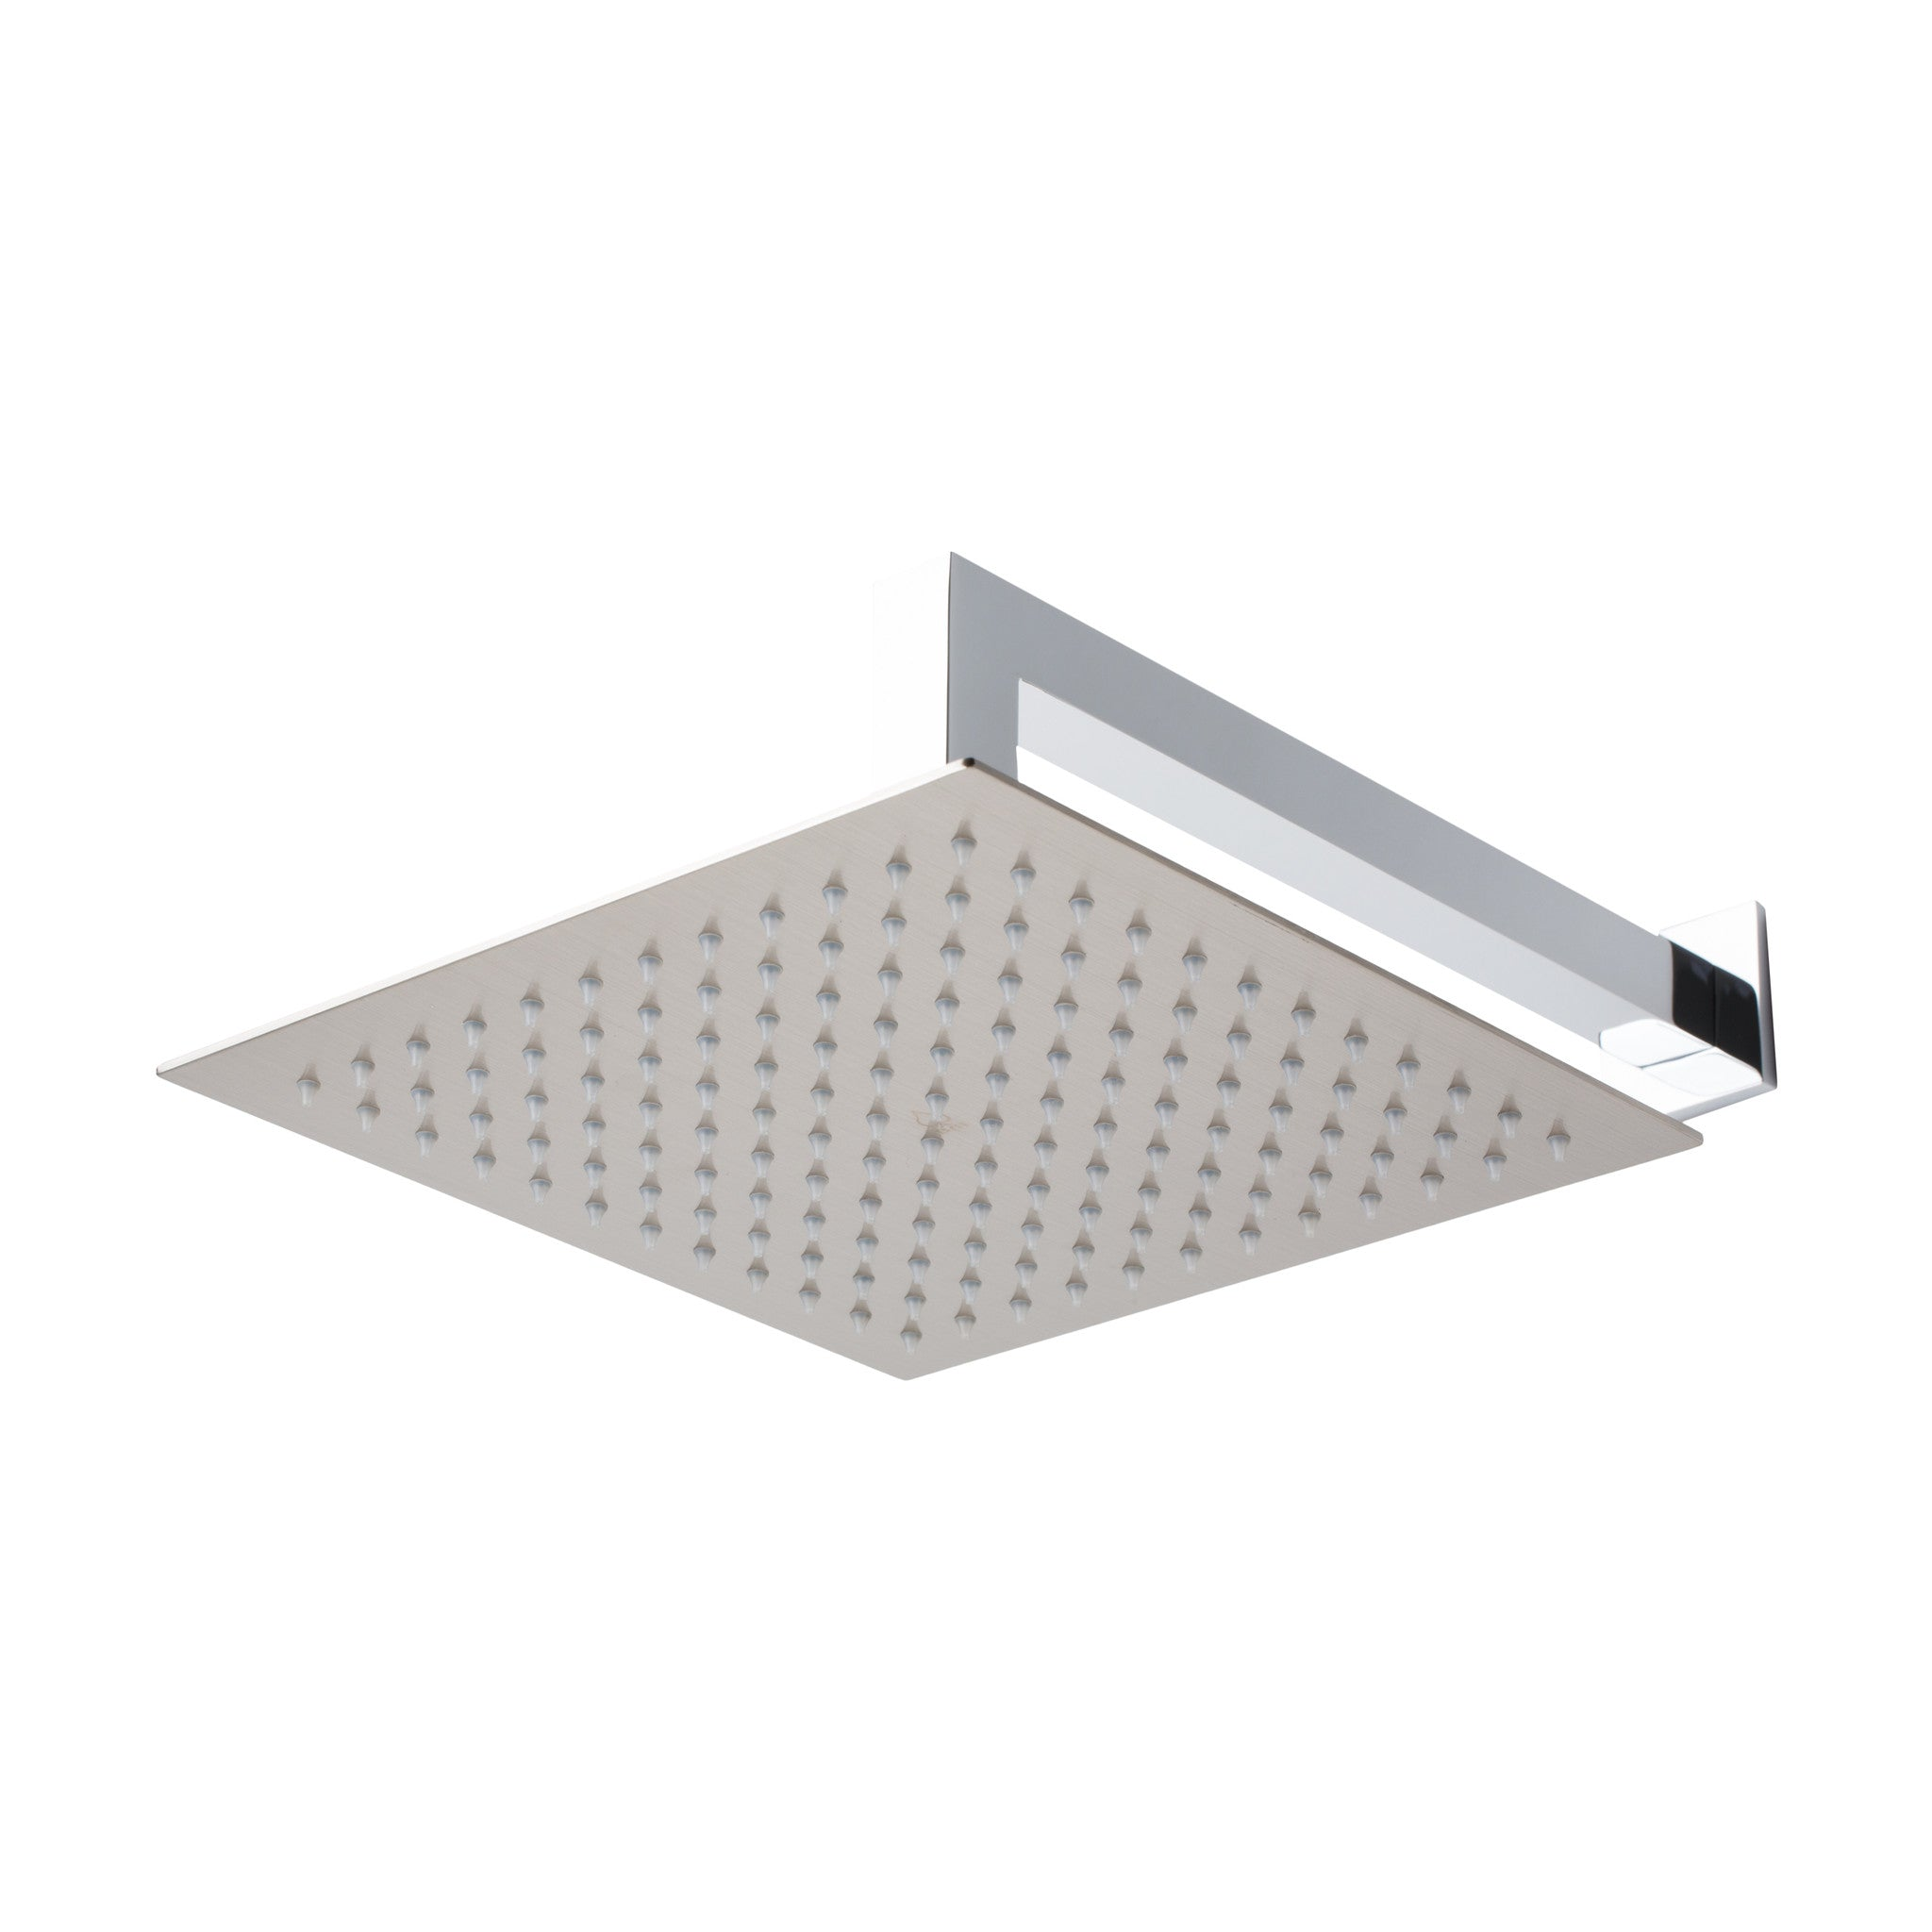 Bai 0419 Stainless Steel 10 Inch Square Rainfall Shower Head